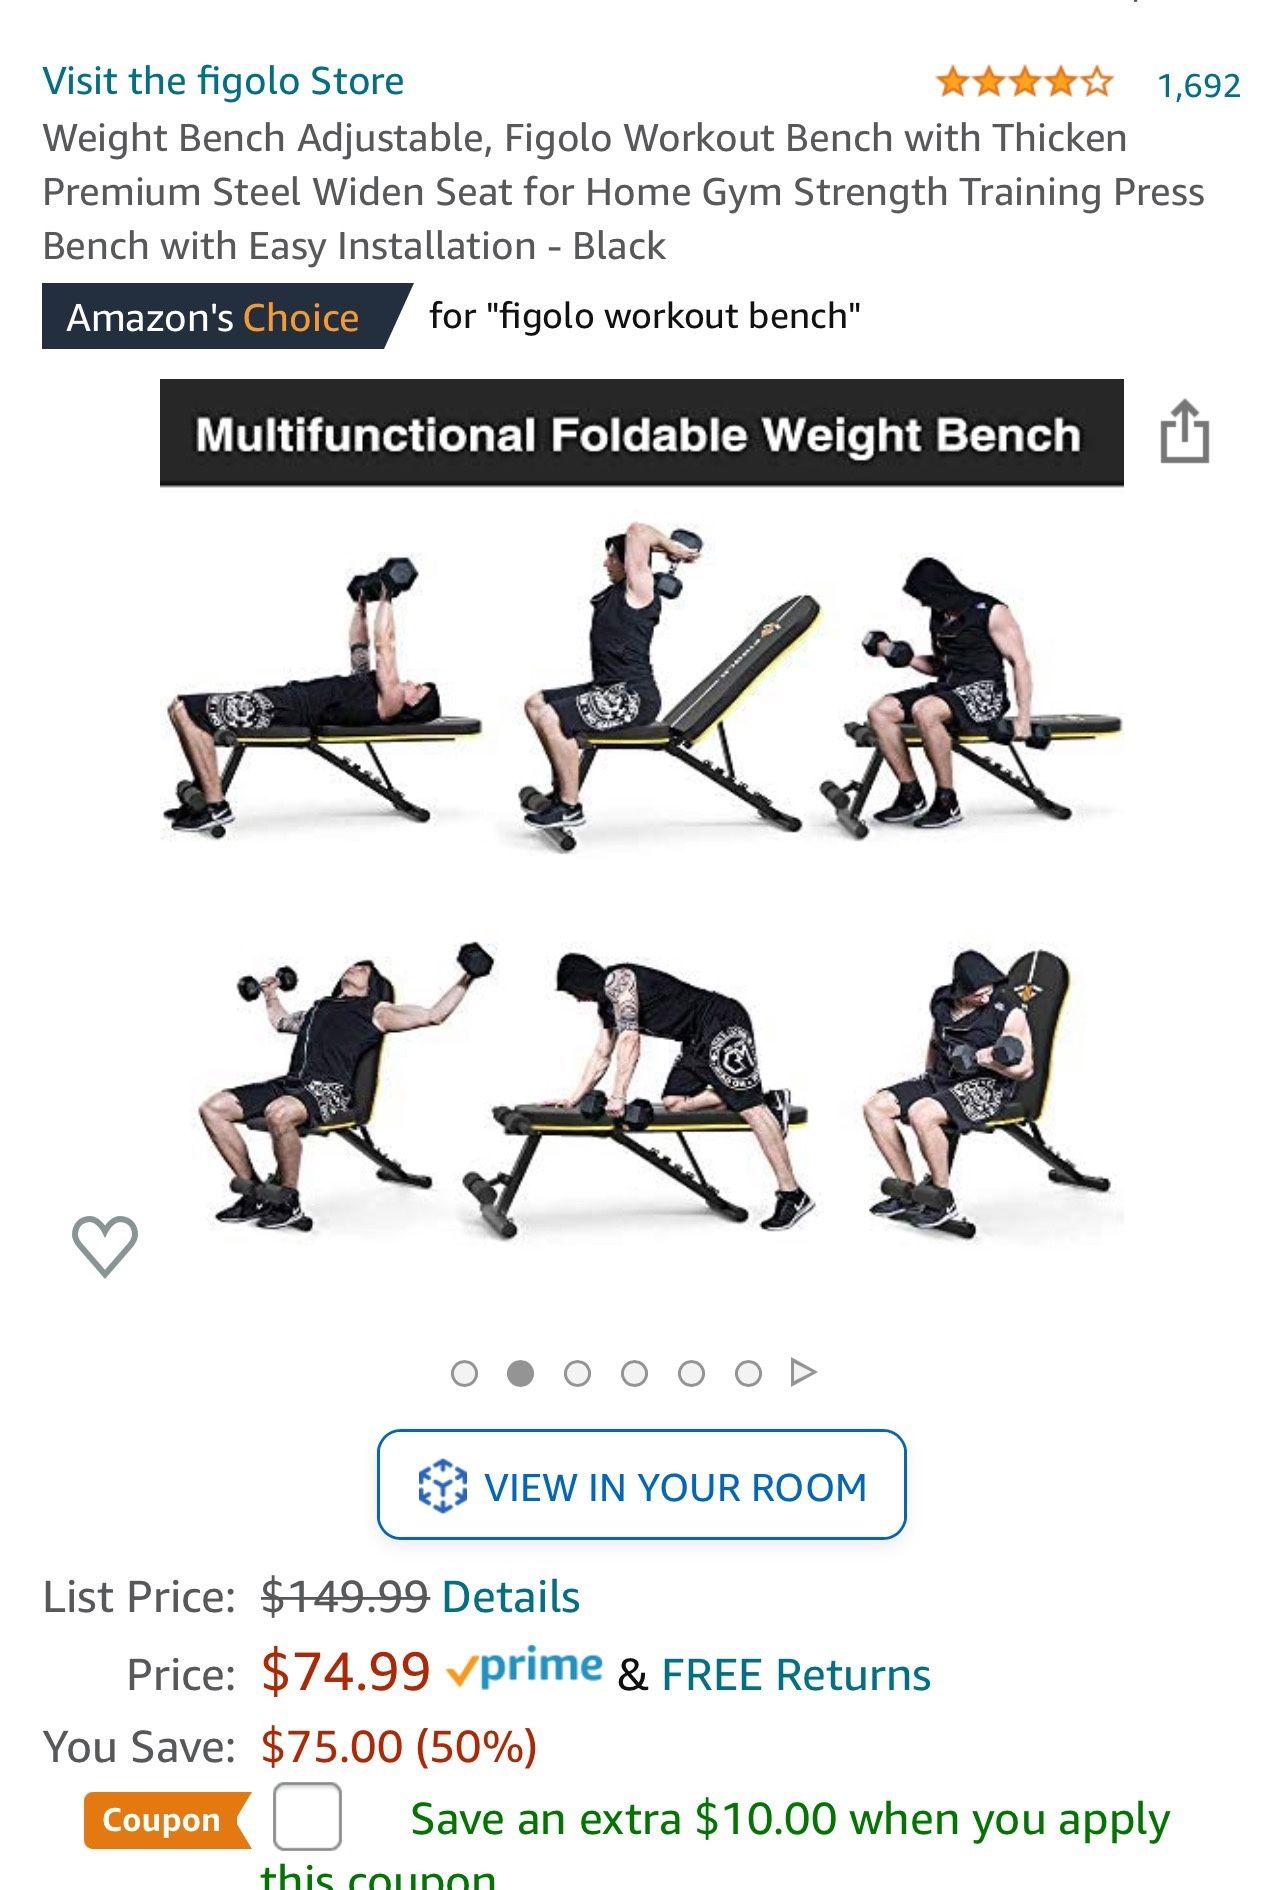 Weight Bench Adjustable, Figolo Workout Bench with Thicken Premium Steel Widen Seat for Home Gym Strength Training Press Bench with Easy Installation